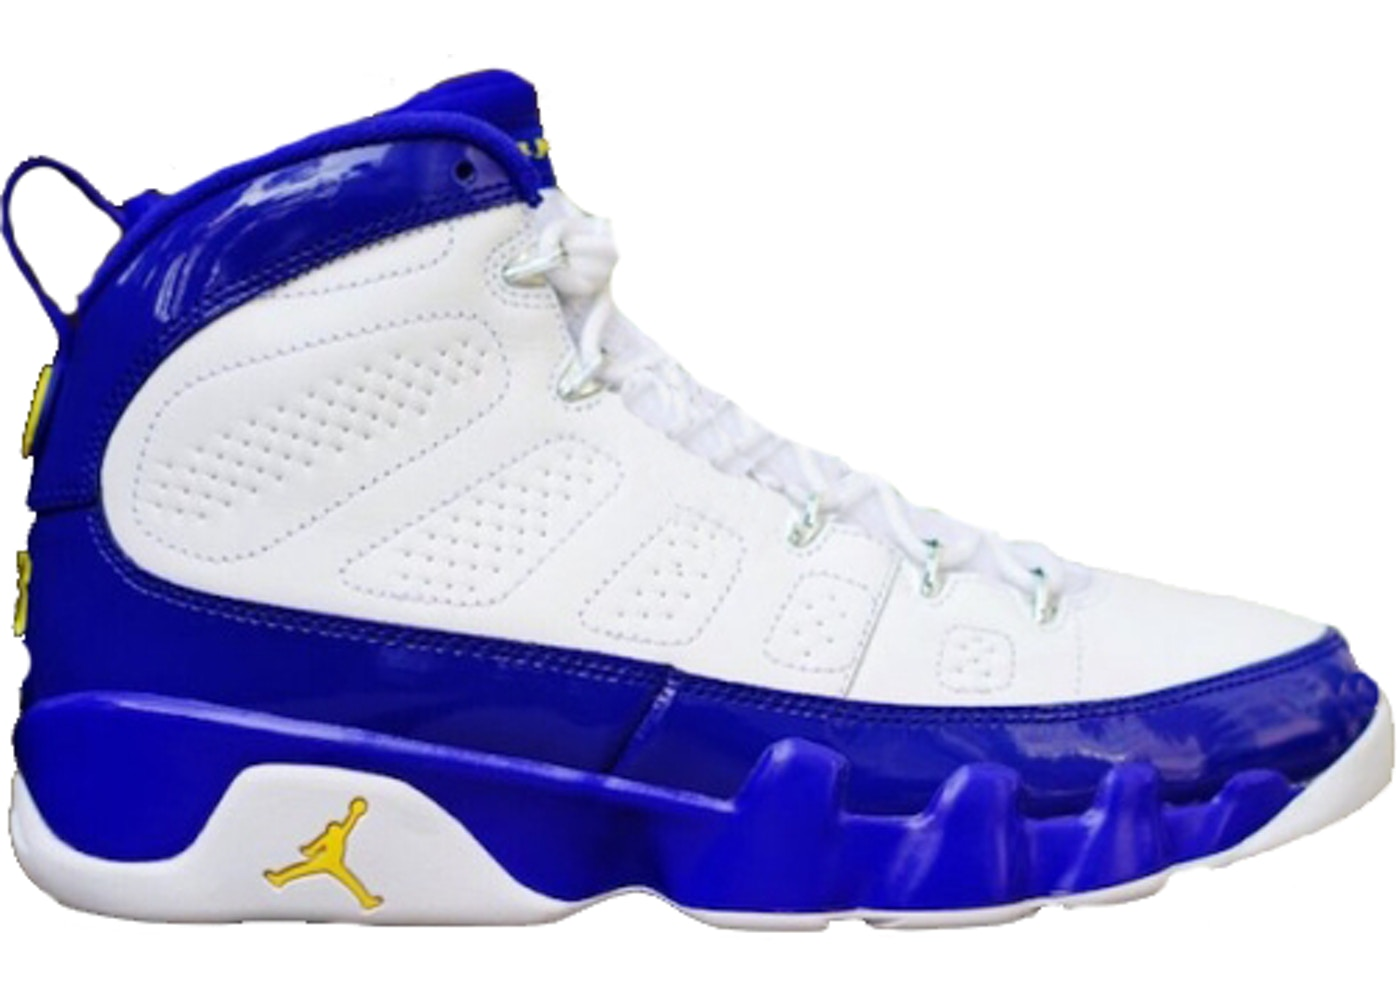 best website 9682e b0e41 Jordan 9 Retro Kobe Bryant PE - 302370-121